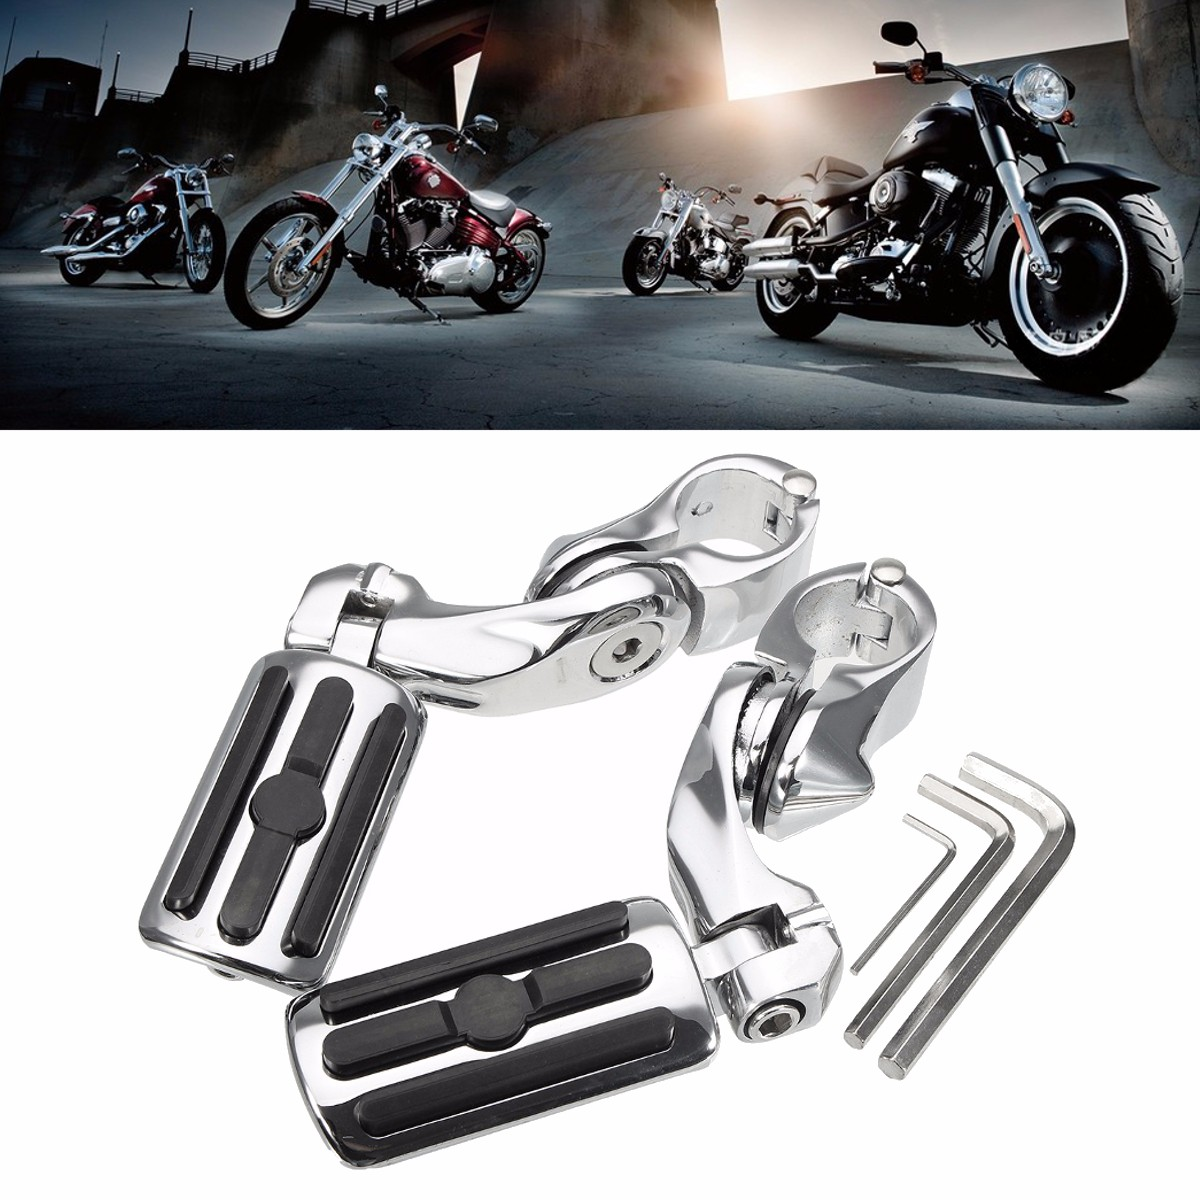 New Pair 1.25 inch 3.2cm Chrome Adjustable Foot Pegs Pedals Foot Rests Footrest For Harley Davidson chrome lion paw foot pegs